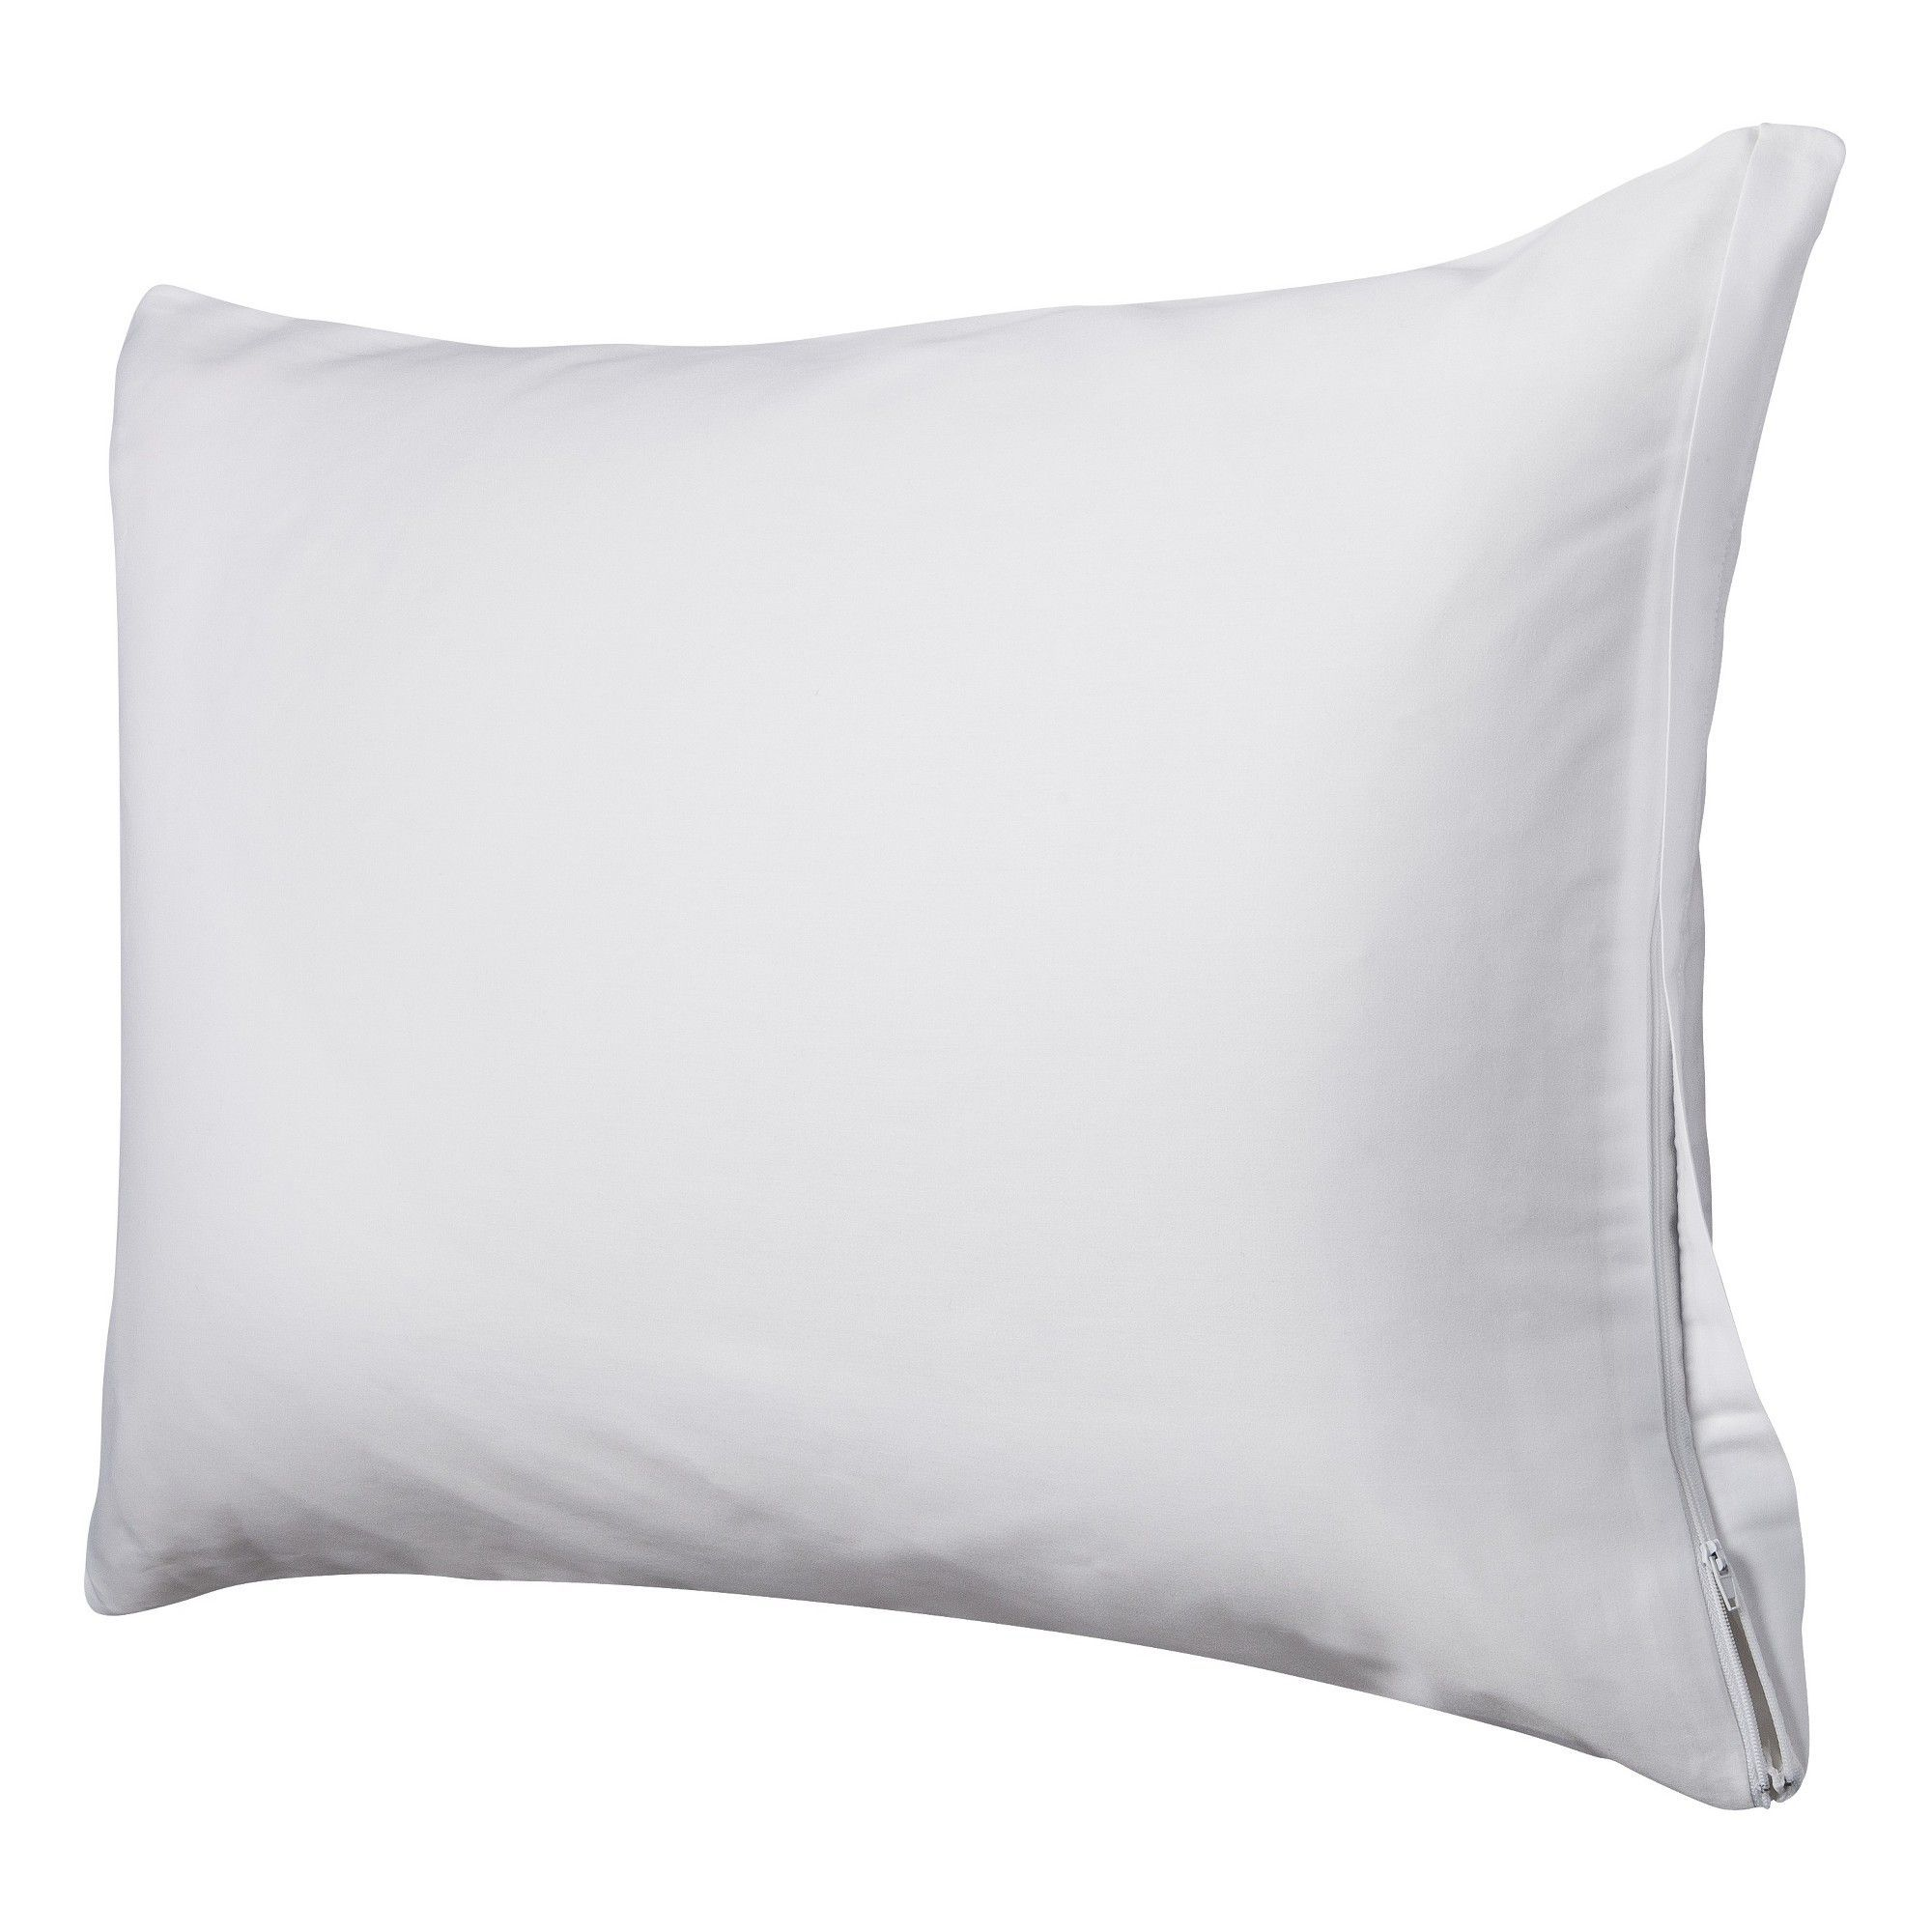 thread count product pillow on bedding quilted set cotton orders sateen shipping with protectors free of protector zipper over bath overstock